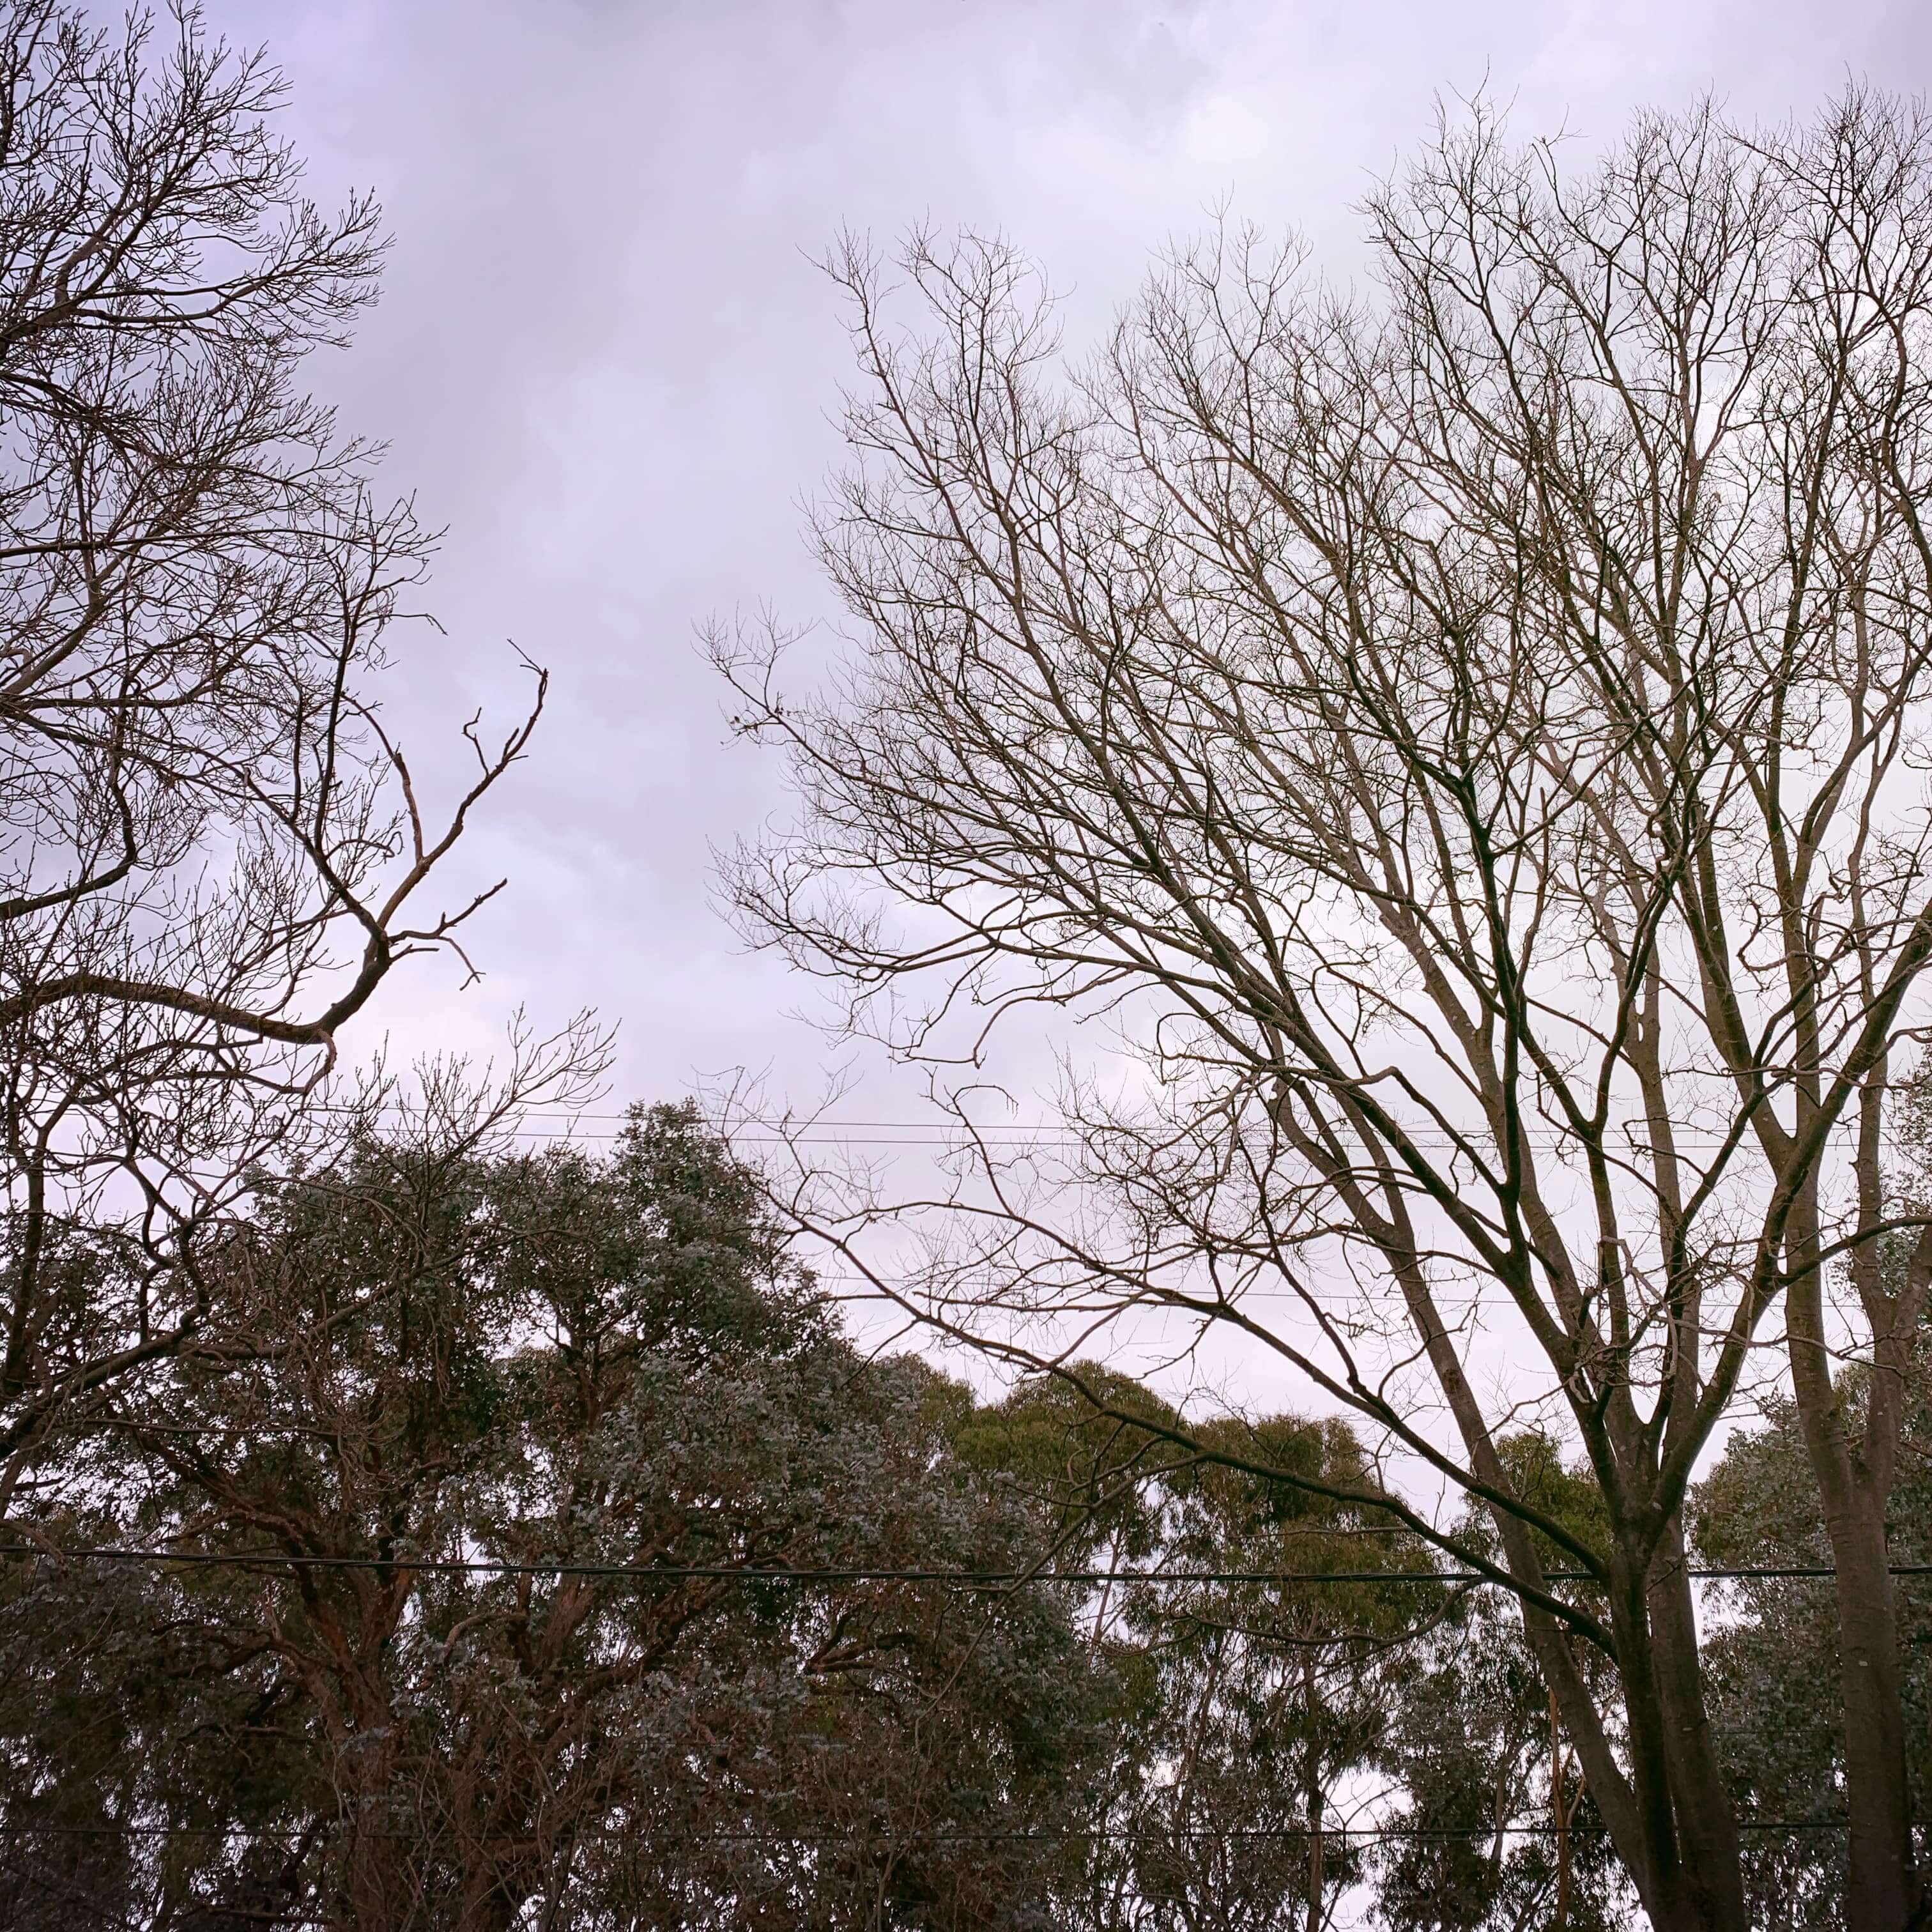 Trees in winter, Canberra